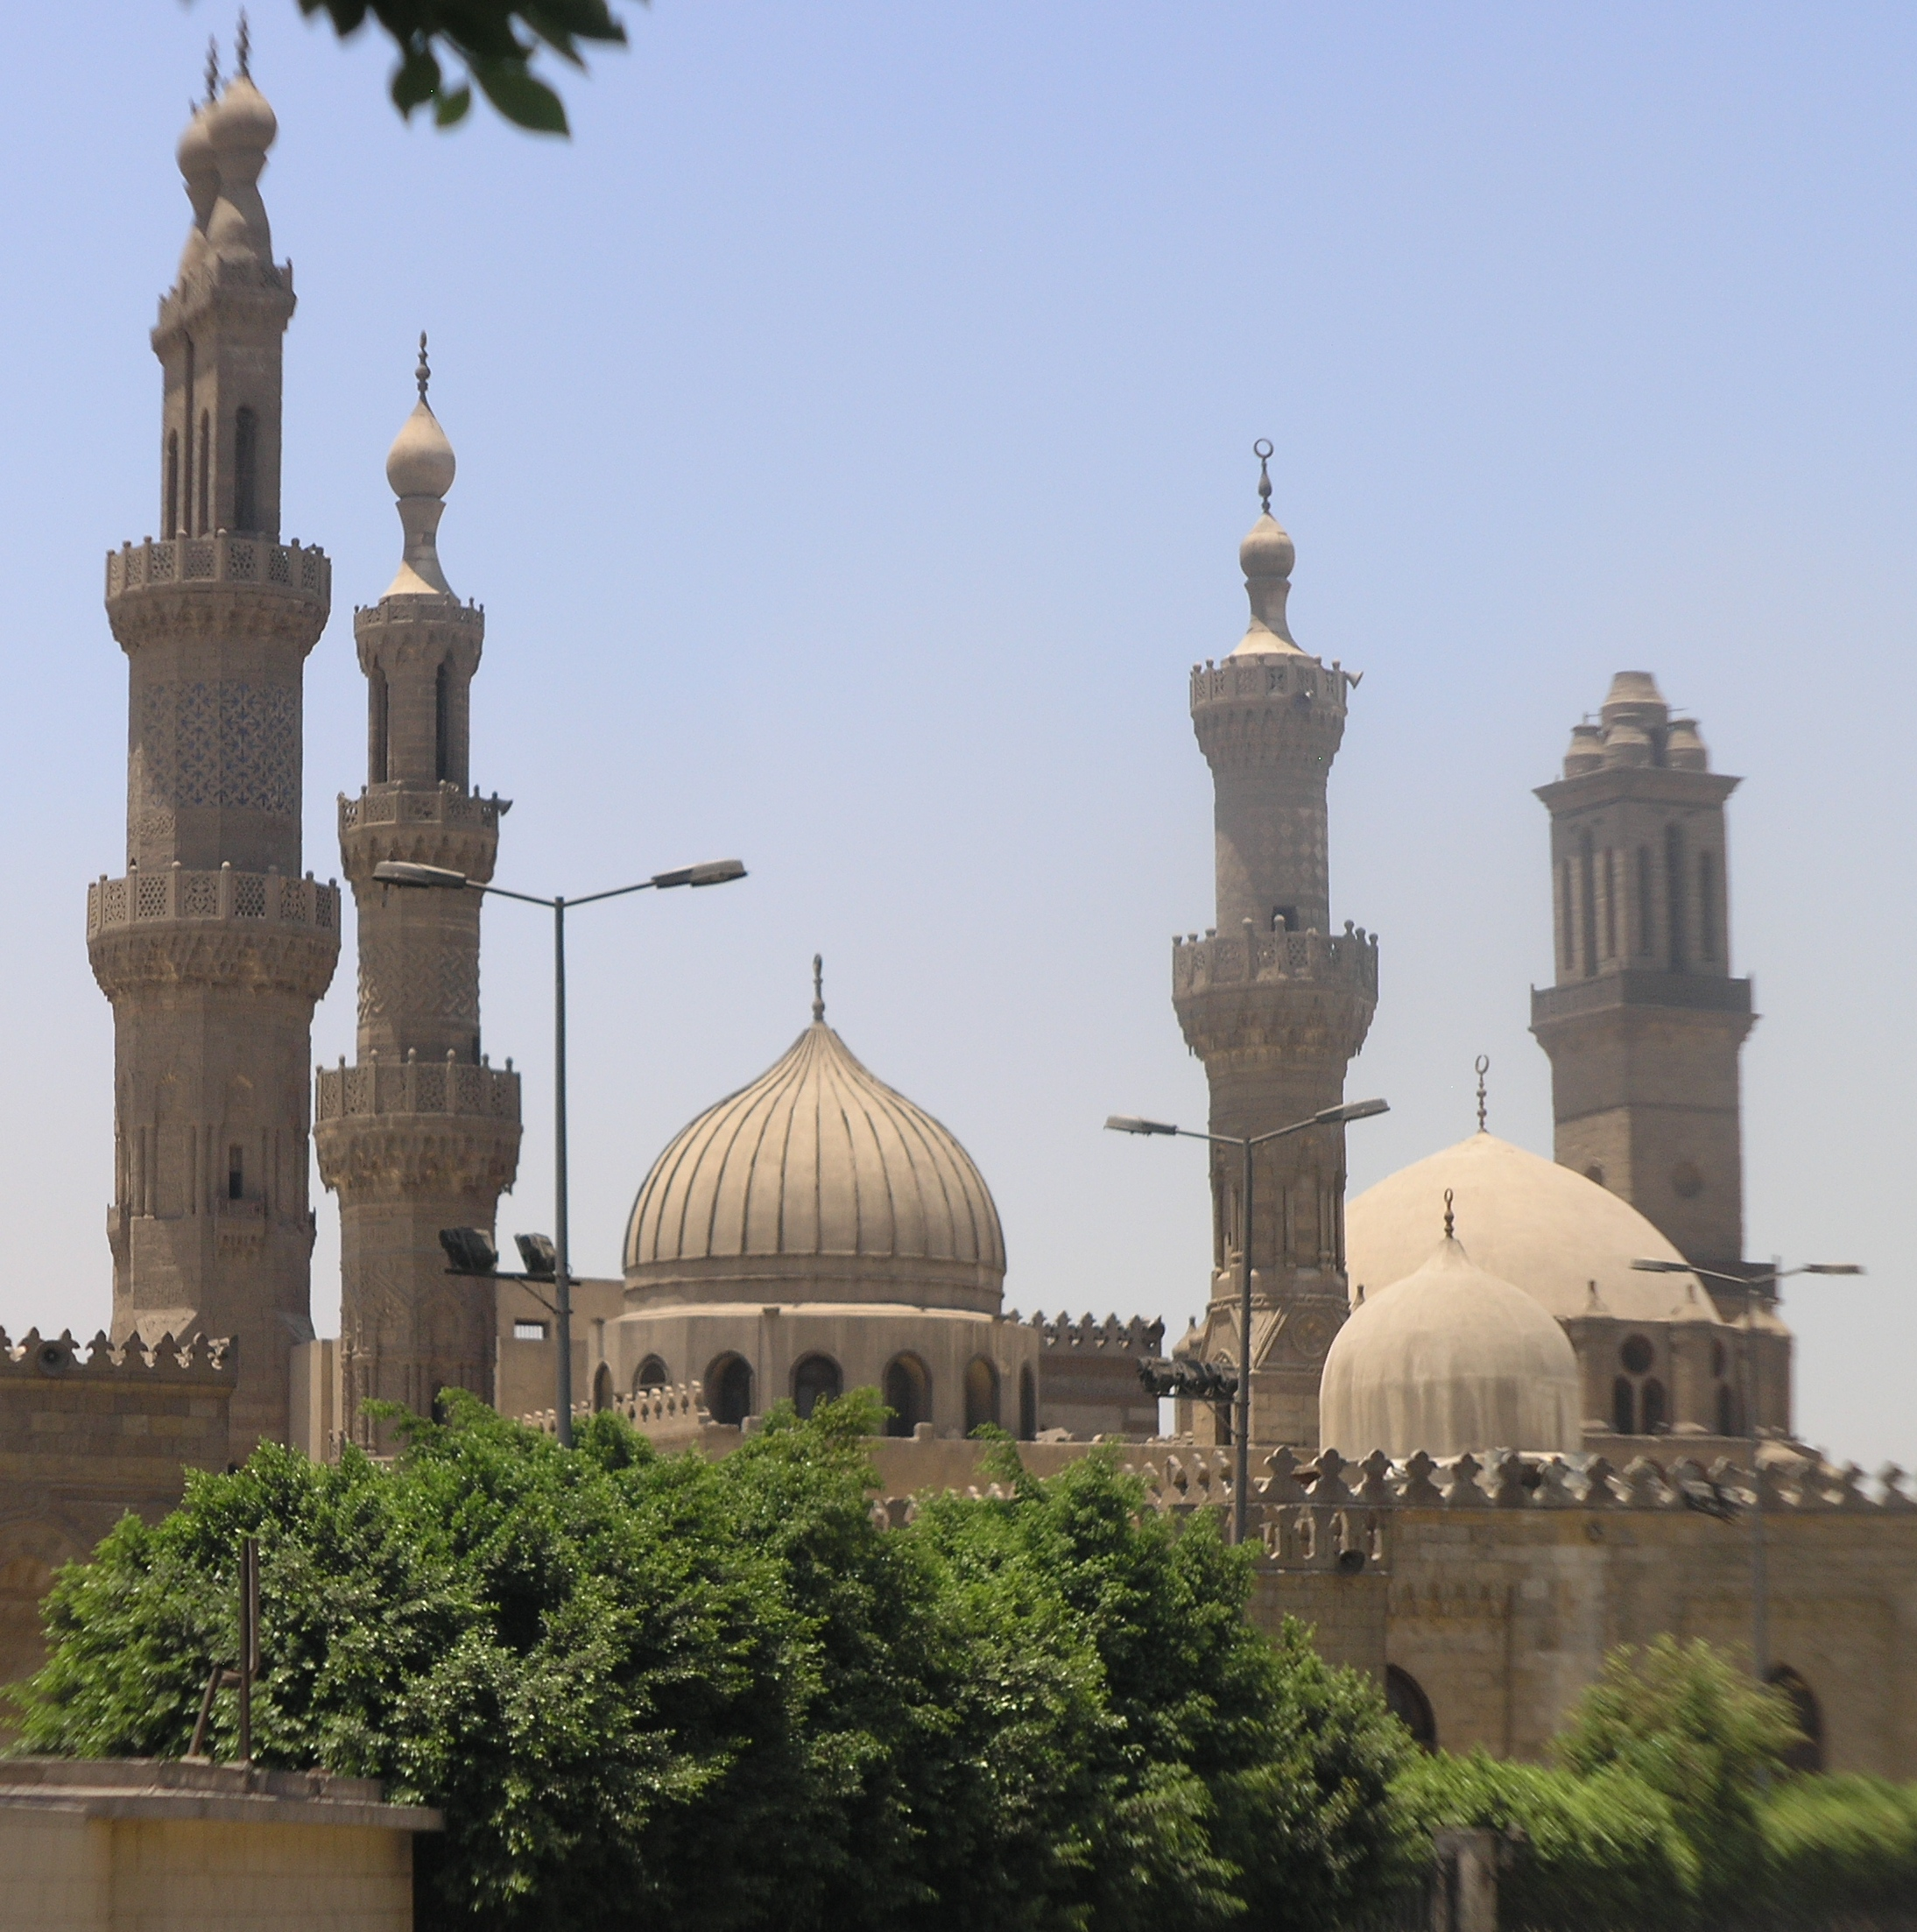 al-azhar mosque - wikipedia